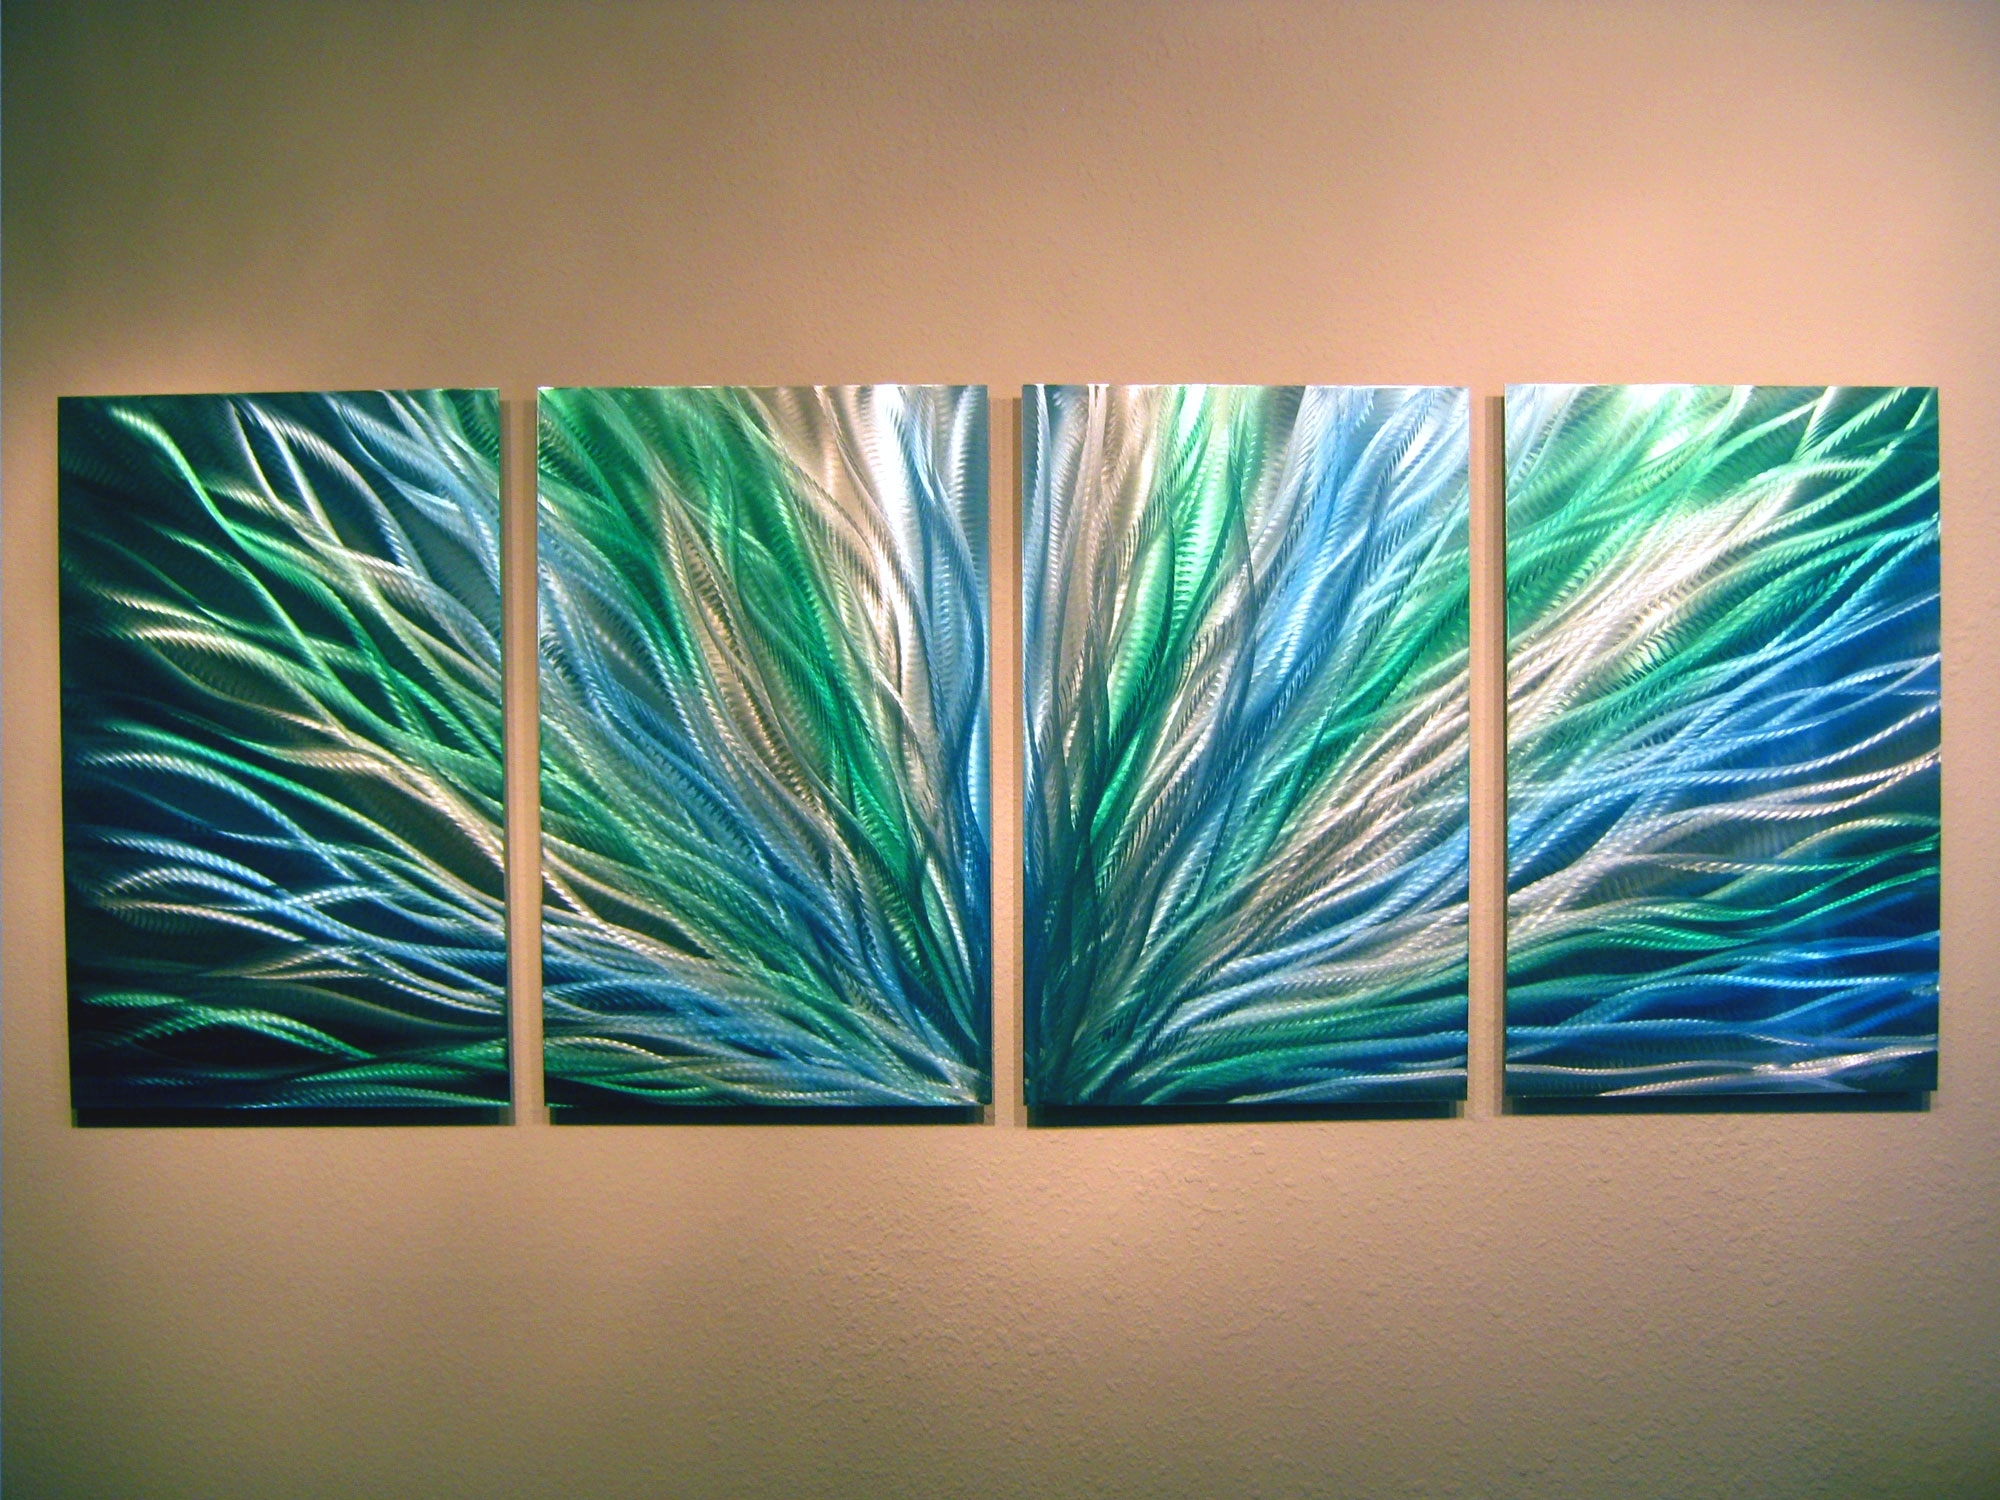 Radiance Blue Green  Abstract Metal Wall Art Contemporary Modern Regarding Most Popular Abstract Metal Wall Art Painting (View 16 of 20)